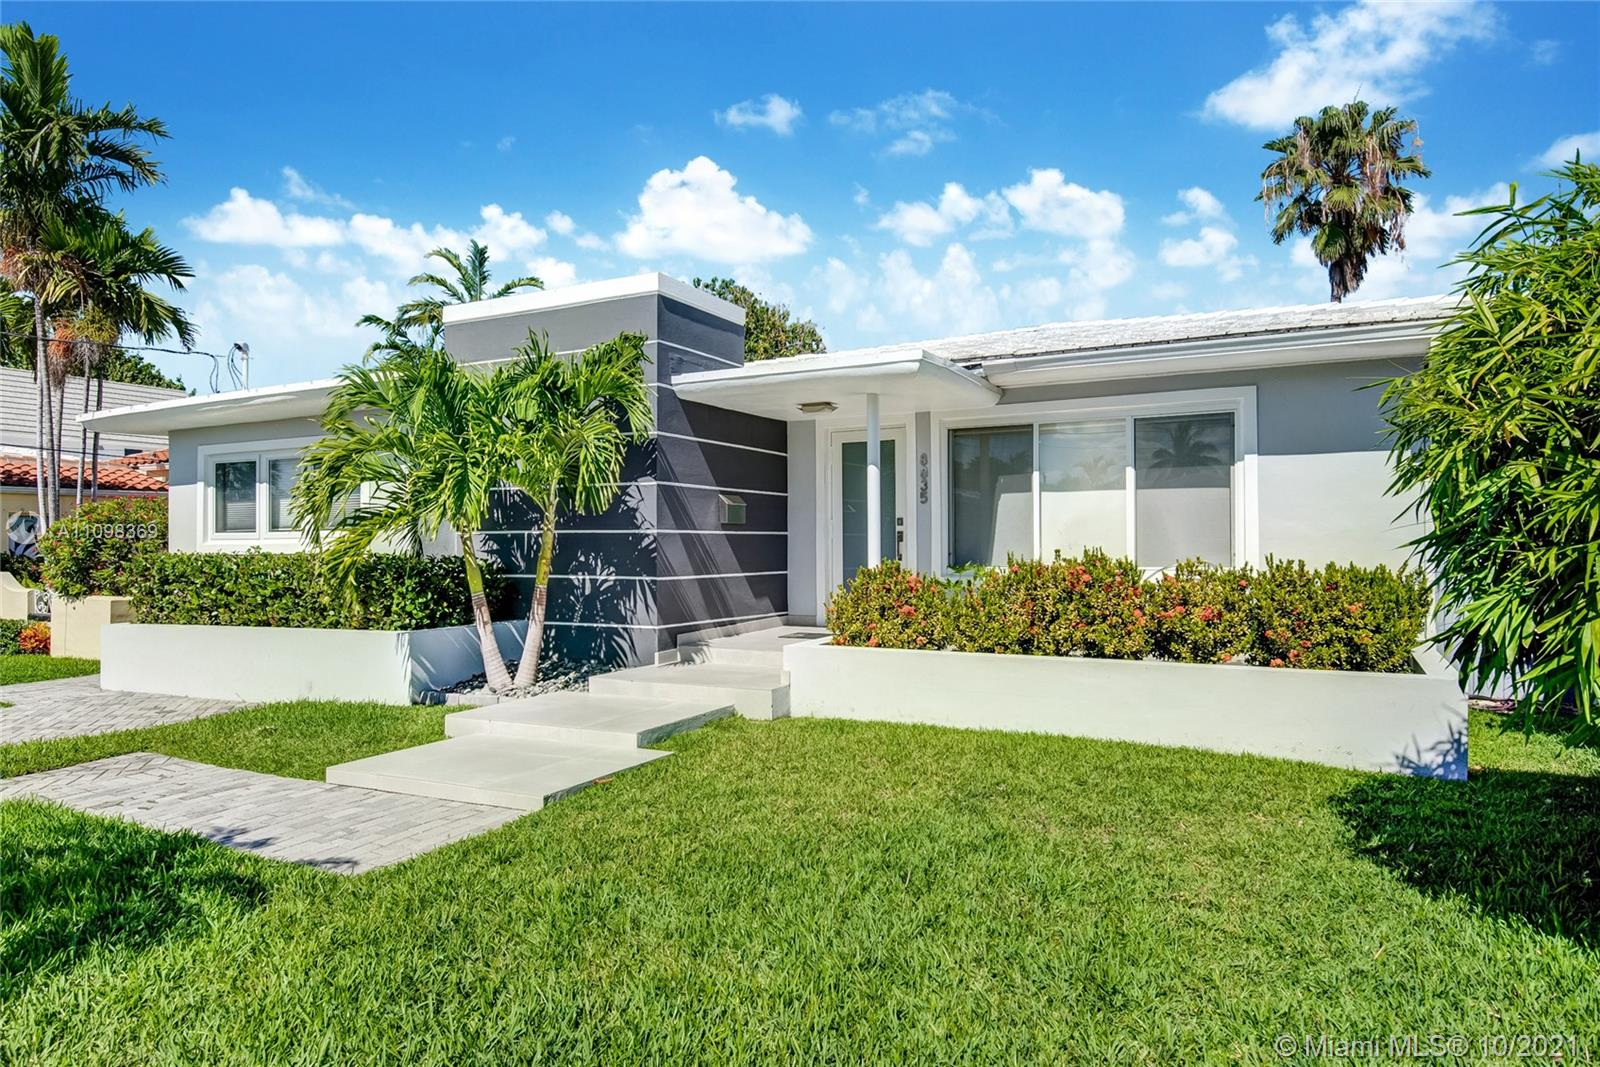 Single Family Home,For Sale,8835 Carlyle Ave, Surfside, Florida 33154,Brickell,realty,broker,condos near me